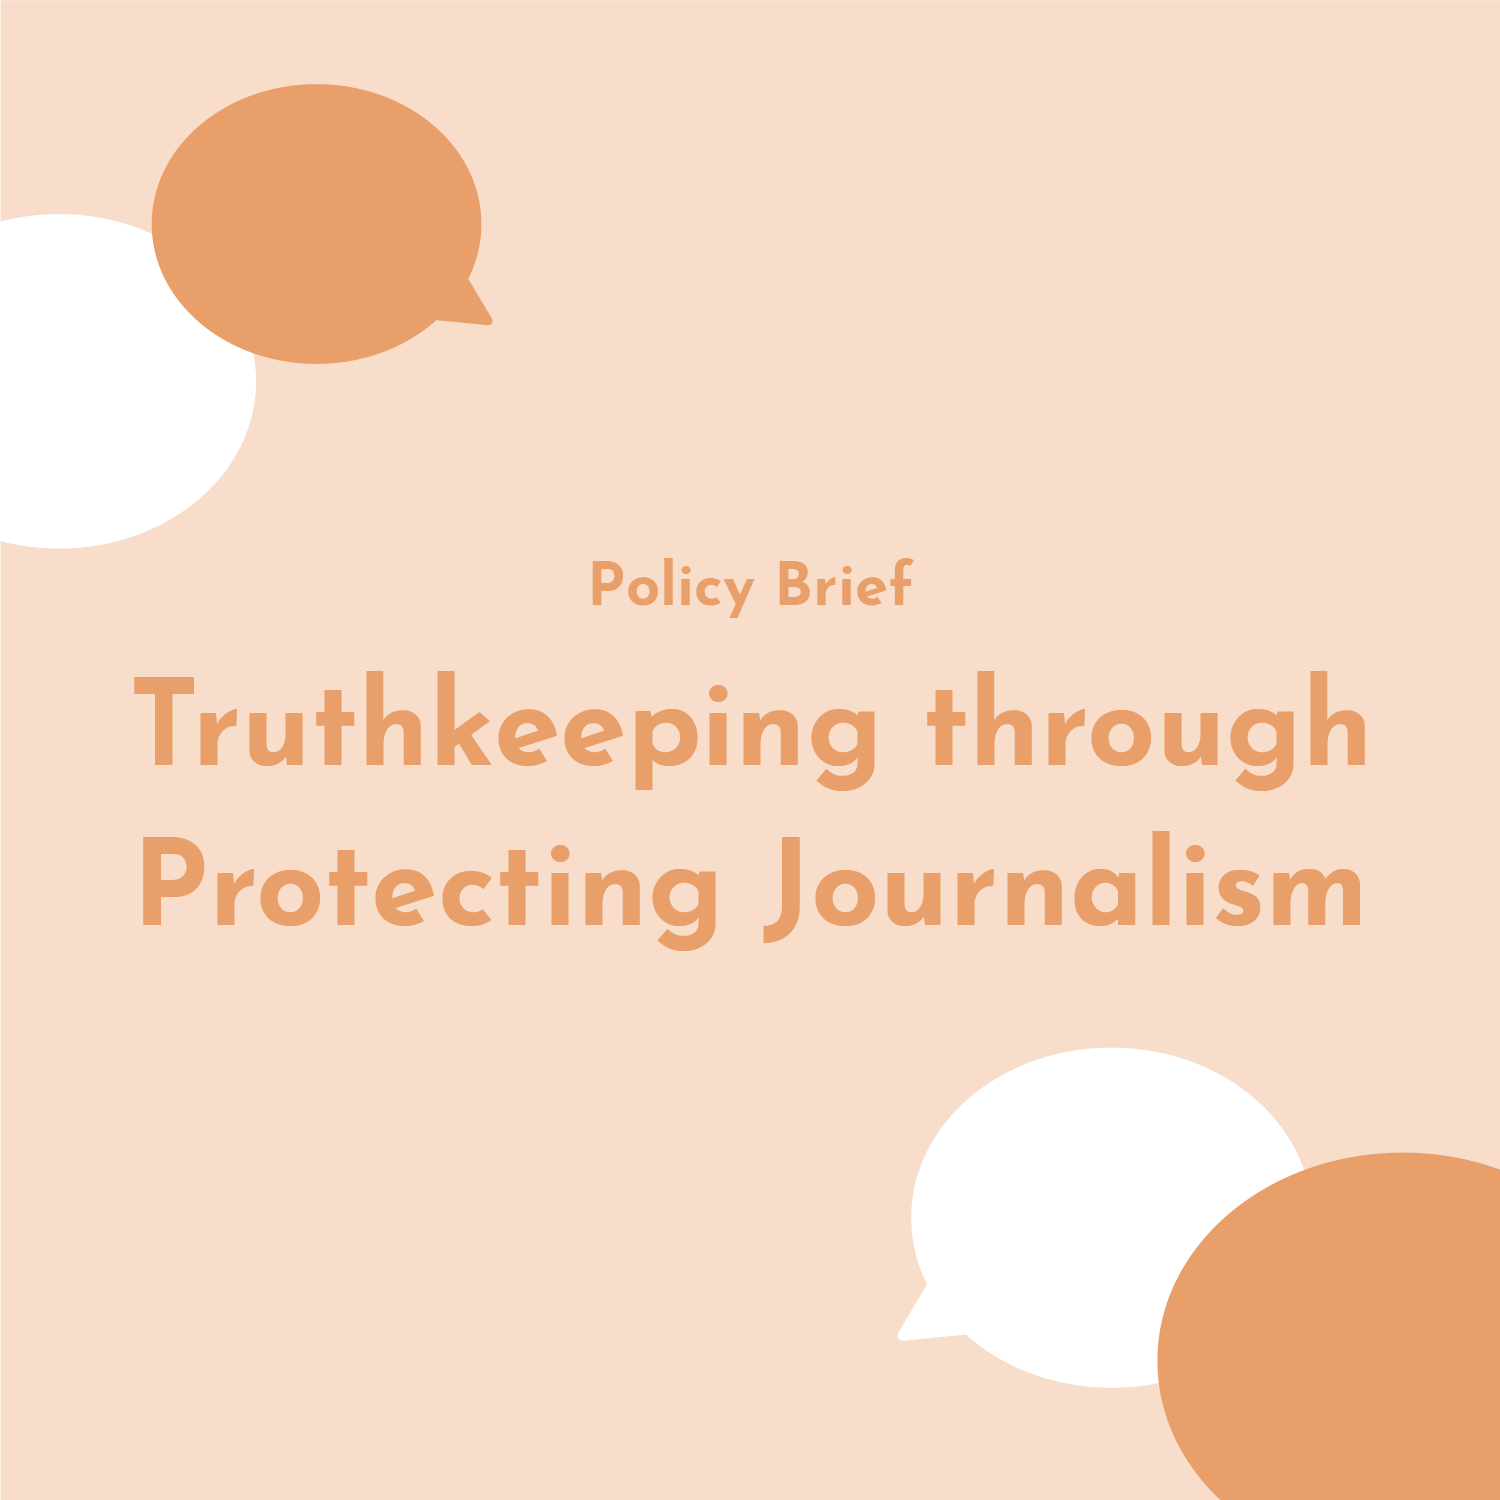 IYTT Policy Brief - Truthkeeping through Protecting Journalism